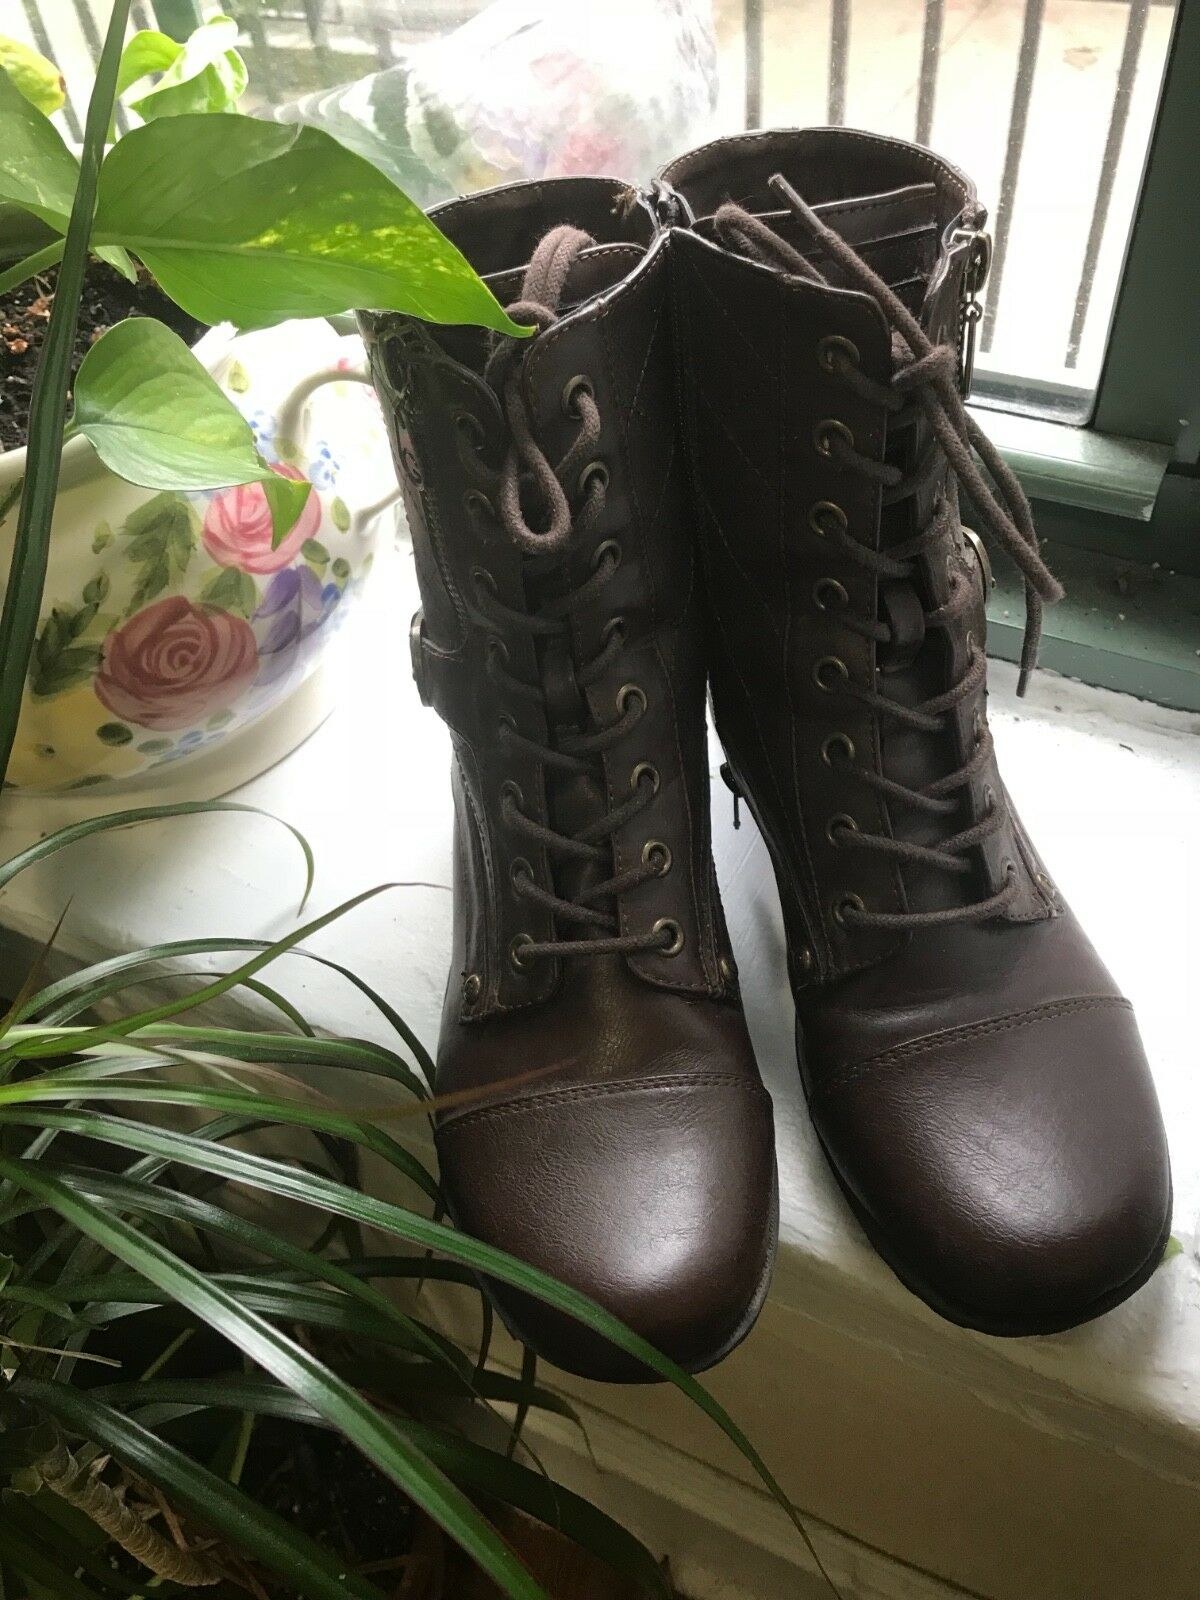 Womens Combat Guess Boots Lace Up Zipper New Women Fashion Boot shoes 7.5 size